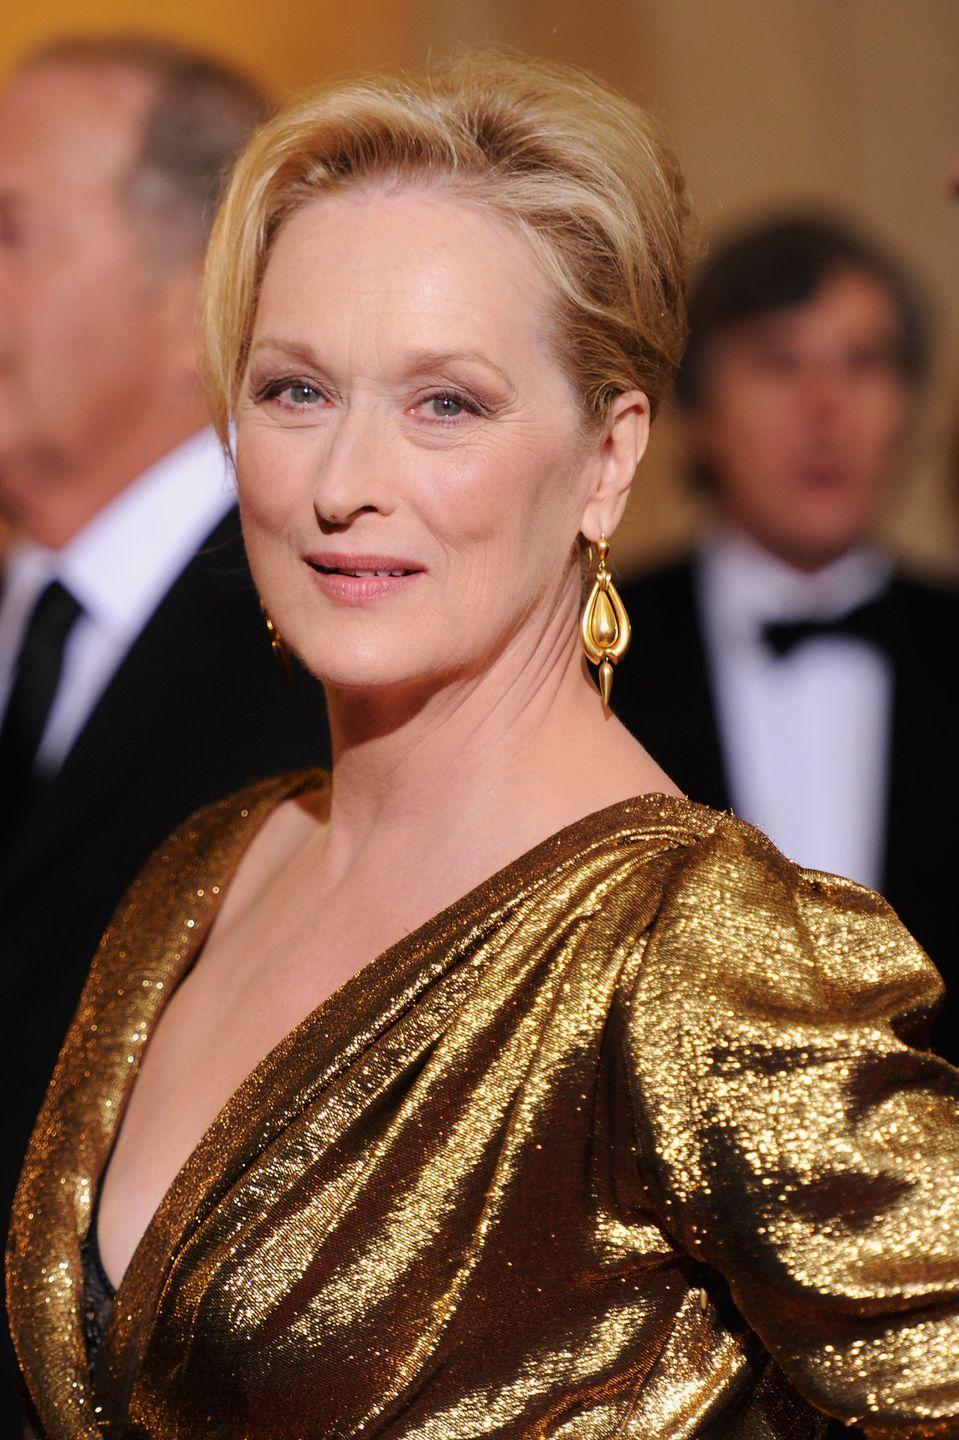 <p>Let the record stand that Meryl Streep has made exactly one mistake in her life and that mistake was <em>She-Devil.</em></p>